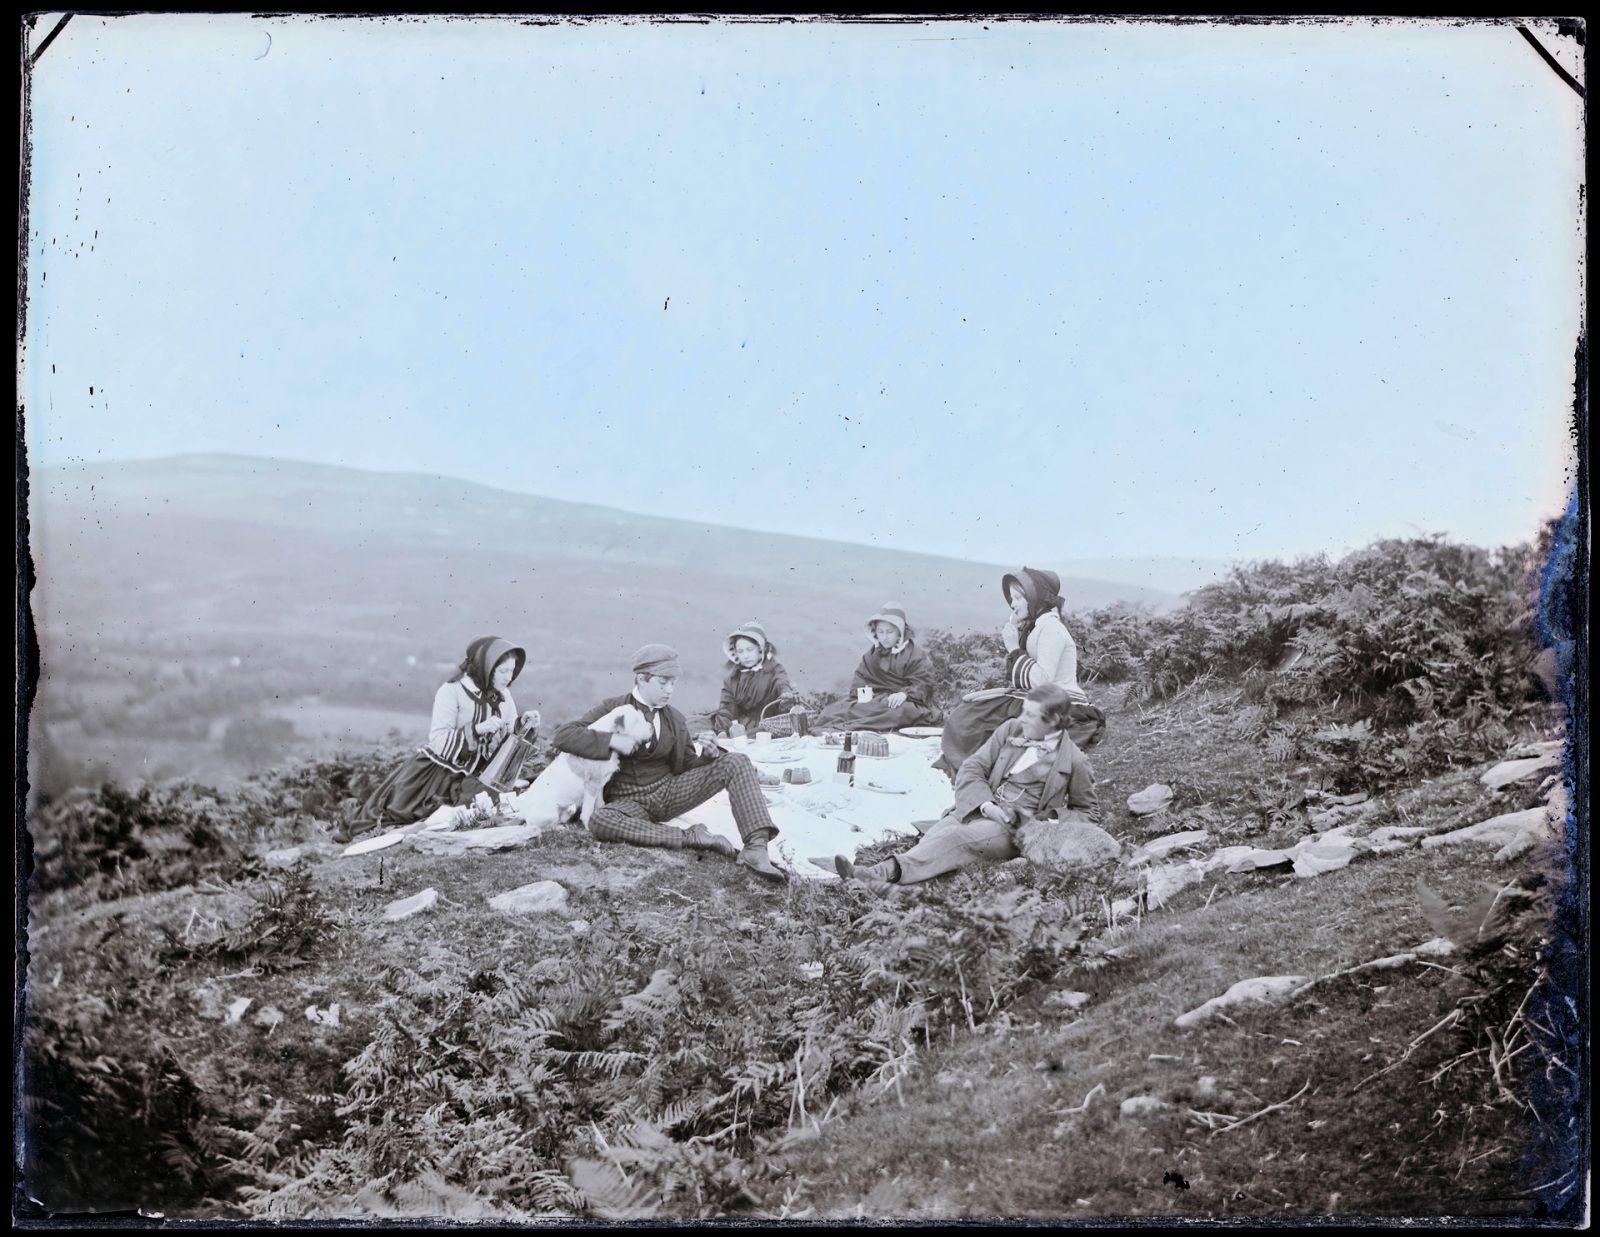 This photographs shows the Llewelyn children having a picnic on the Goppa near Swansea in 1855. It is one of a series of photographs of the children taken by John on the 23rd September each year for his wife's birthday.